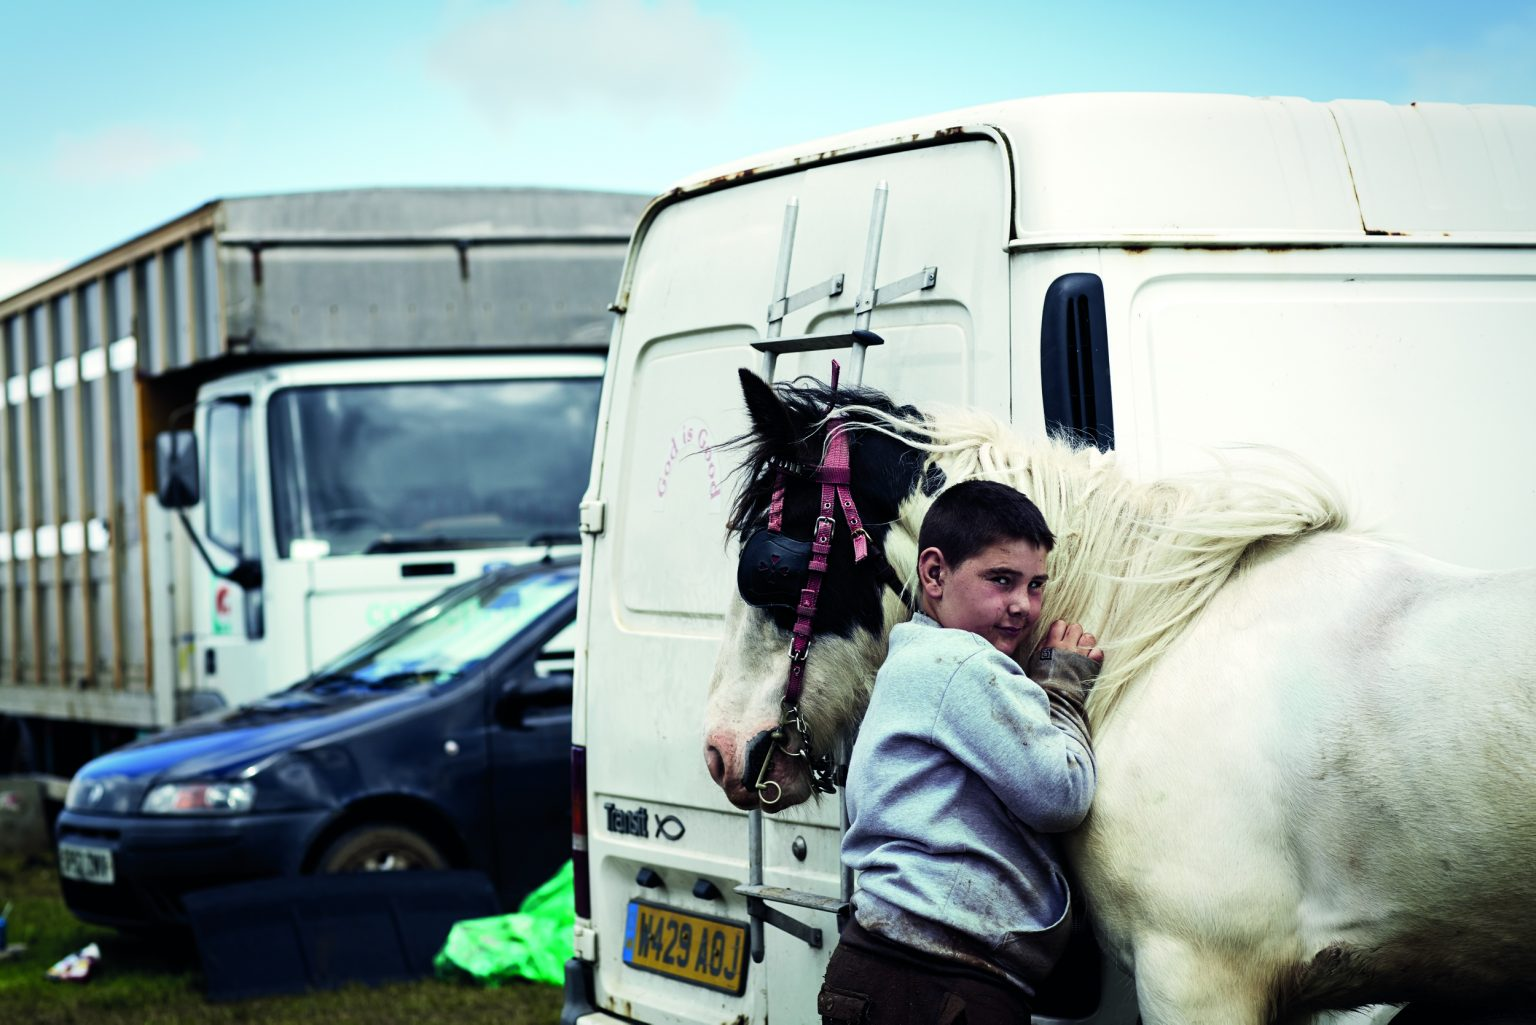 Appleby, United Kingdom, June 2014 - Appleby Horse Fair. Chris, a young gypsy, with his horse Paddy. ><  Appleby, Regno Unito, giugno 2014 - Appleby Horse Fair. Il giovane gitano Chris col suo cavallo Paddy. *** Local Caption ***